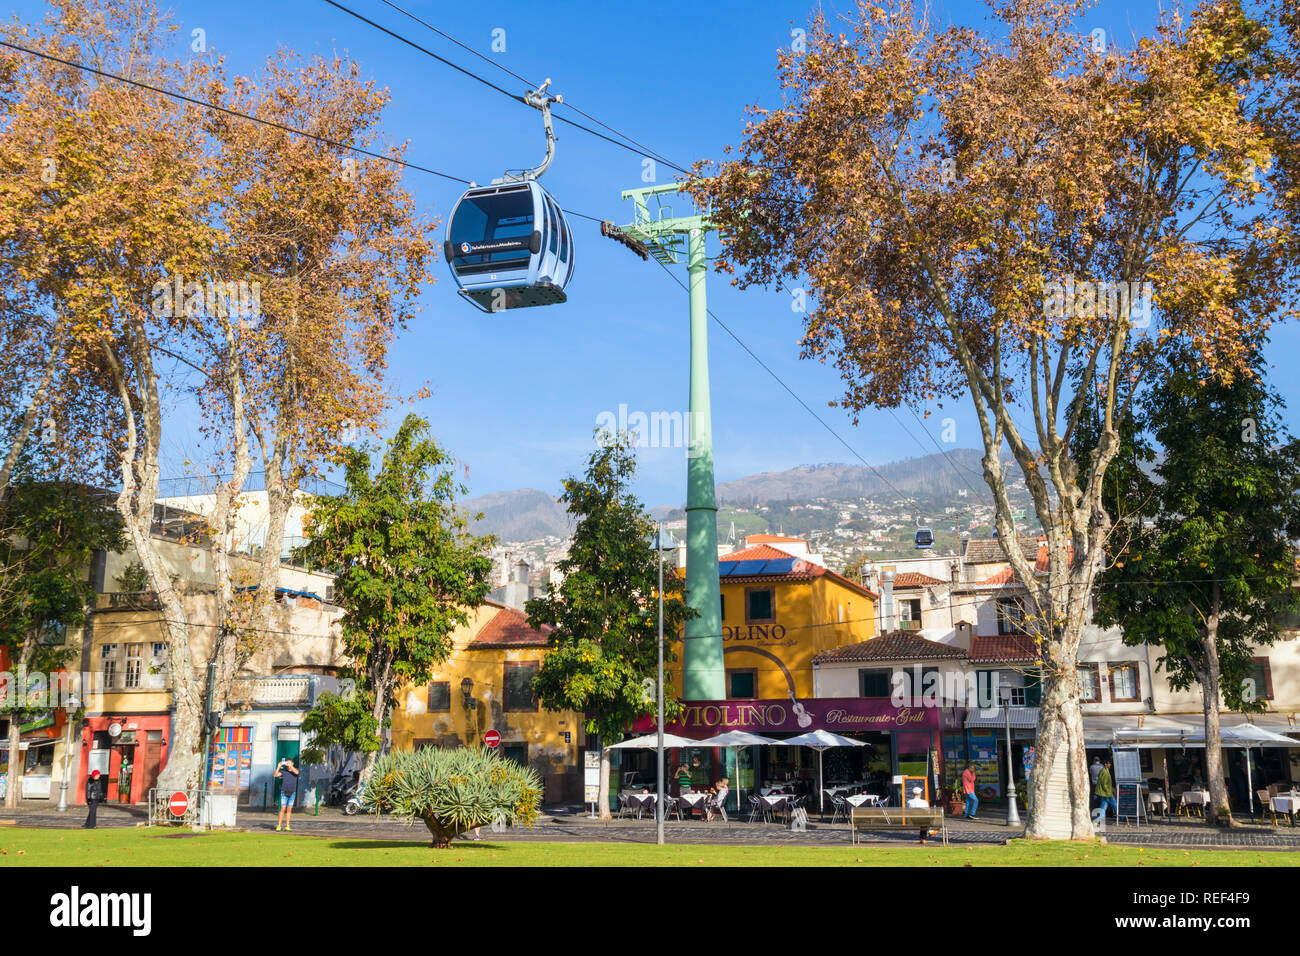 MADEIRA Funchal cable car connecting Zona velha old town funchal to Monte up the mountain Fuchal zona velha Madeira Portugal EU Europe - Stock Image